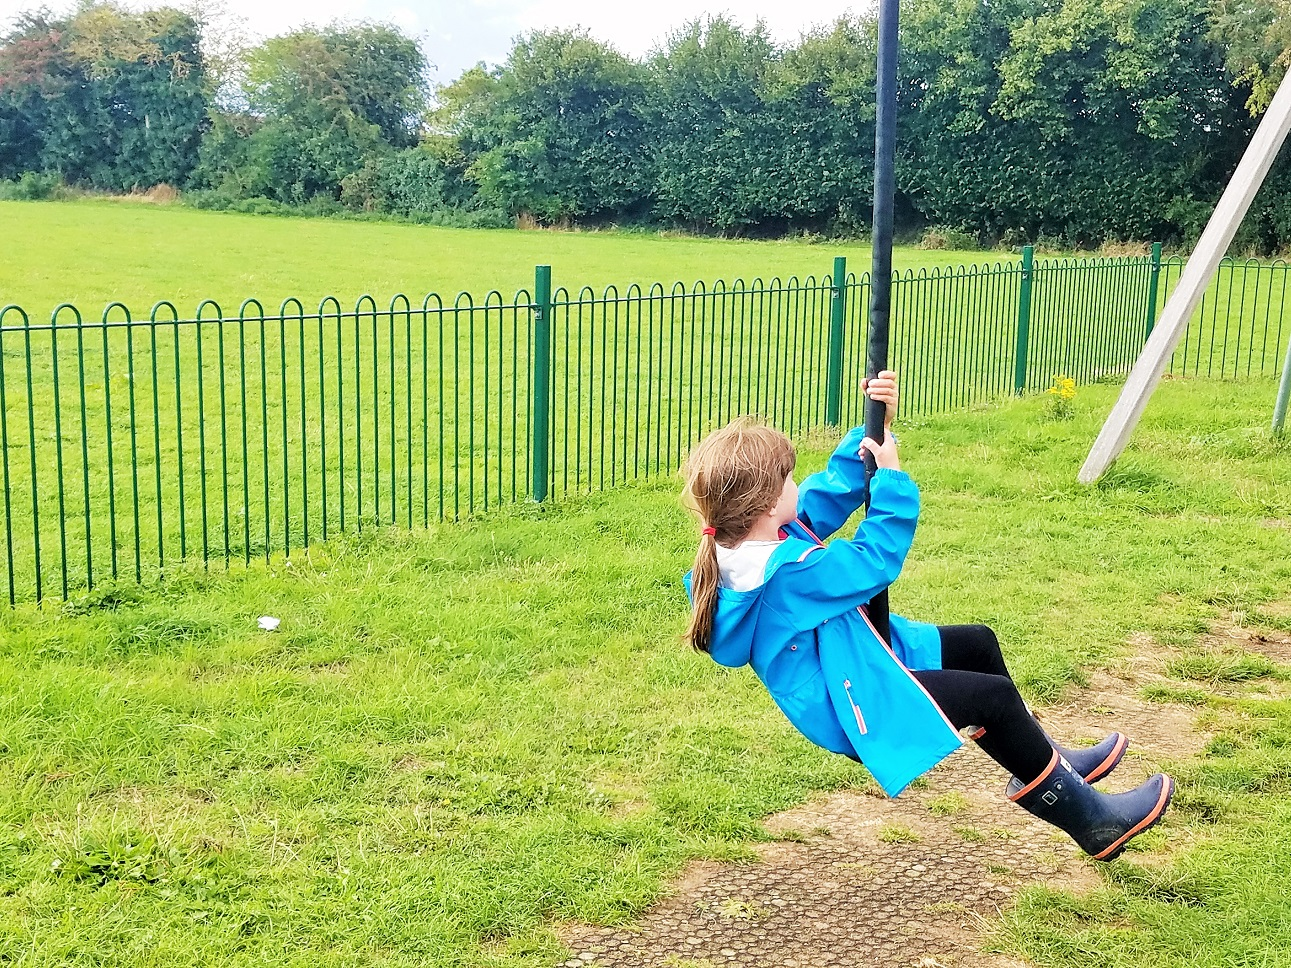 What does it mean to give positive attention to kids? Here are 37 ideas - child in blue coat on a zip wire